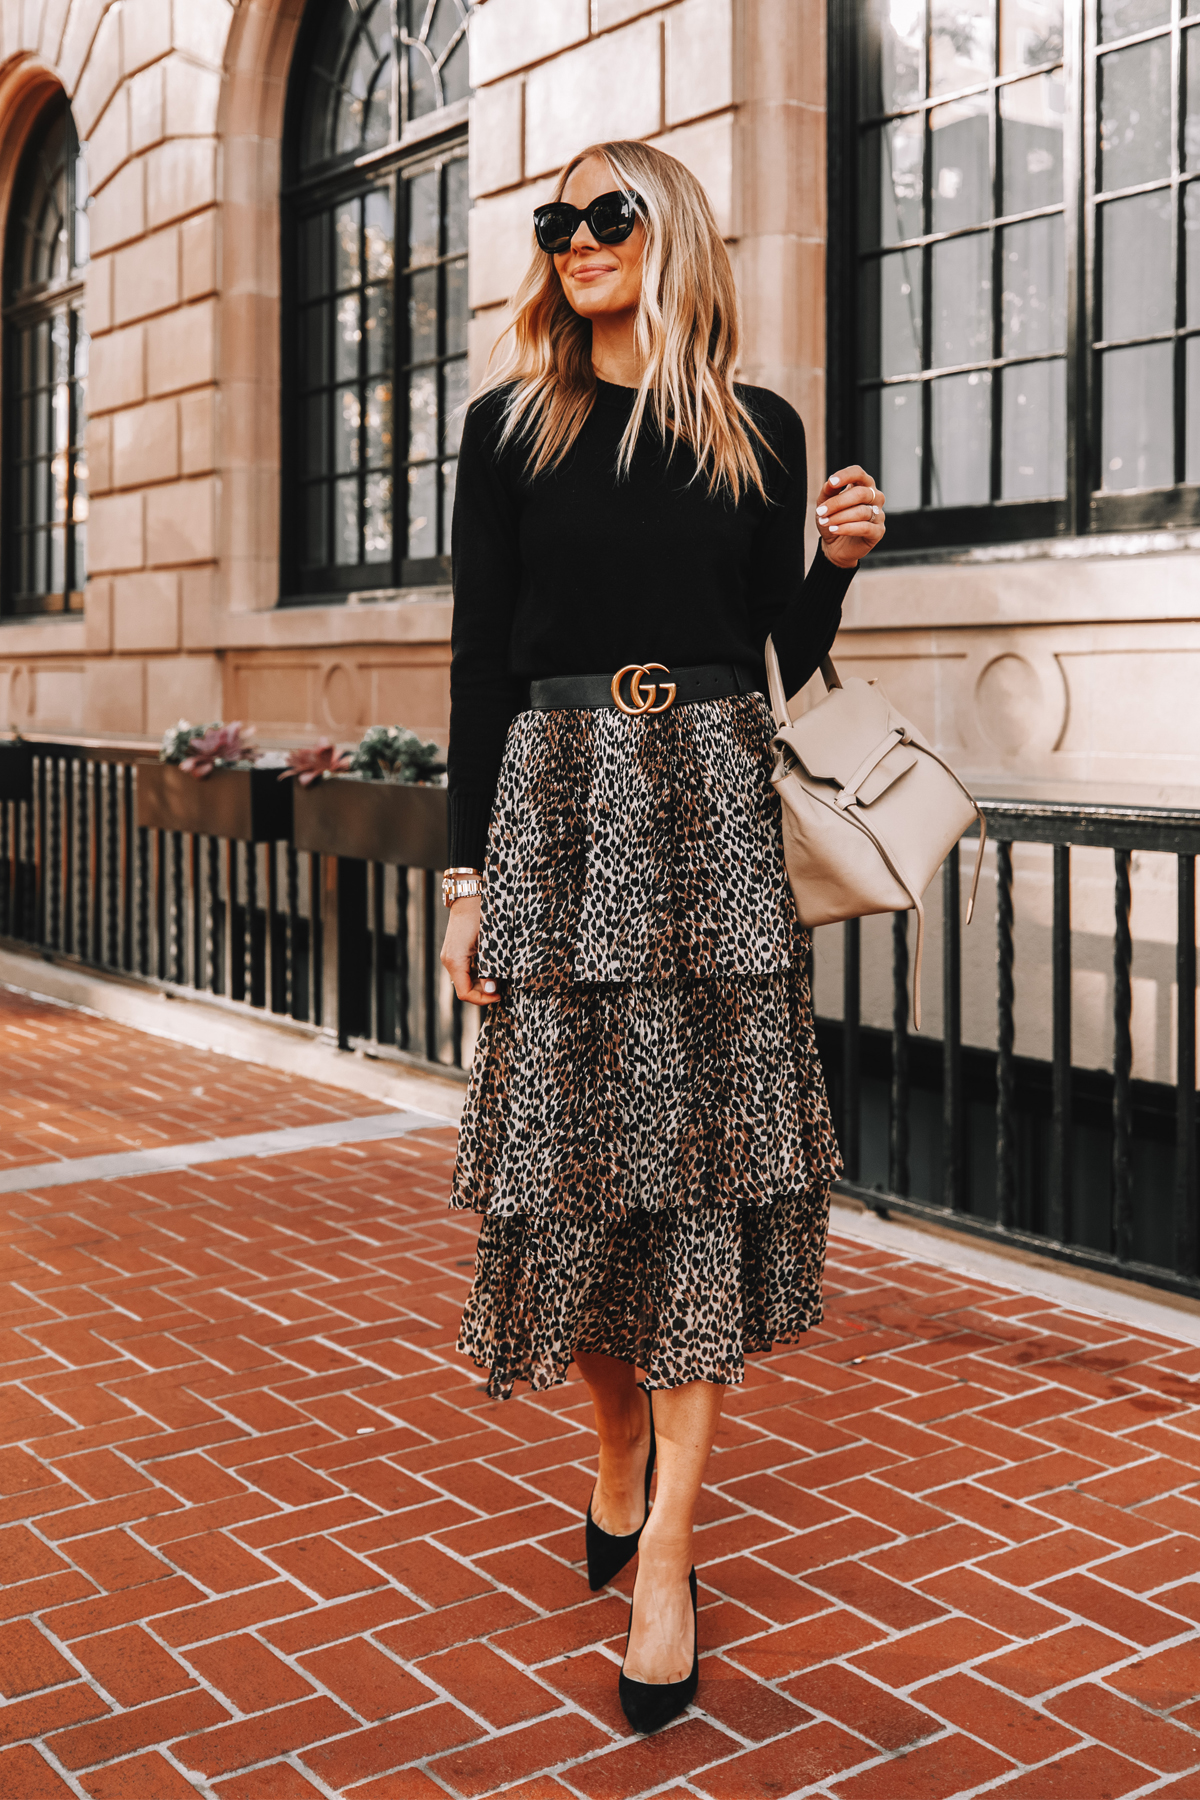 Fashion Jackson Wearing Black Sweater Topshop Leopard Tiered Midi Skirt Gucci Belt Black Pumps Celine Belt Bag Workwear Outfit